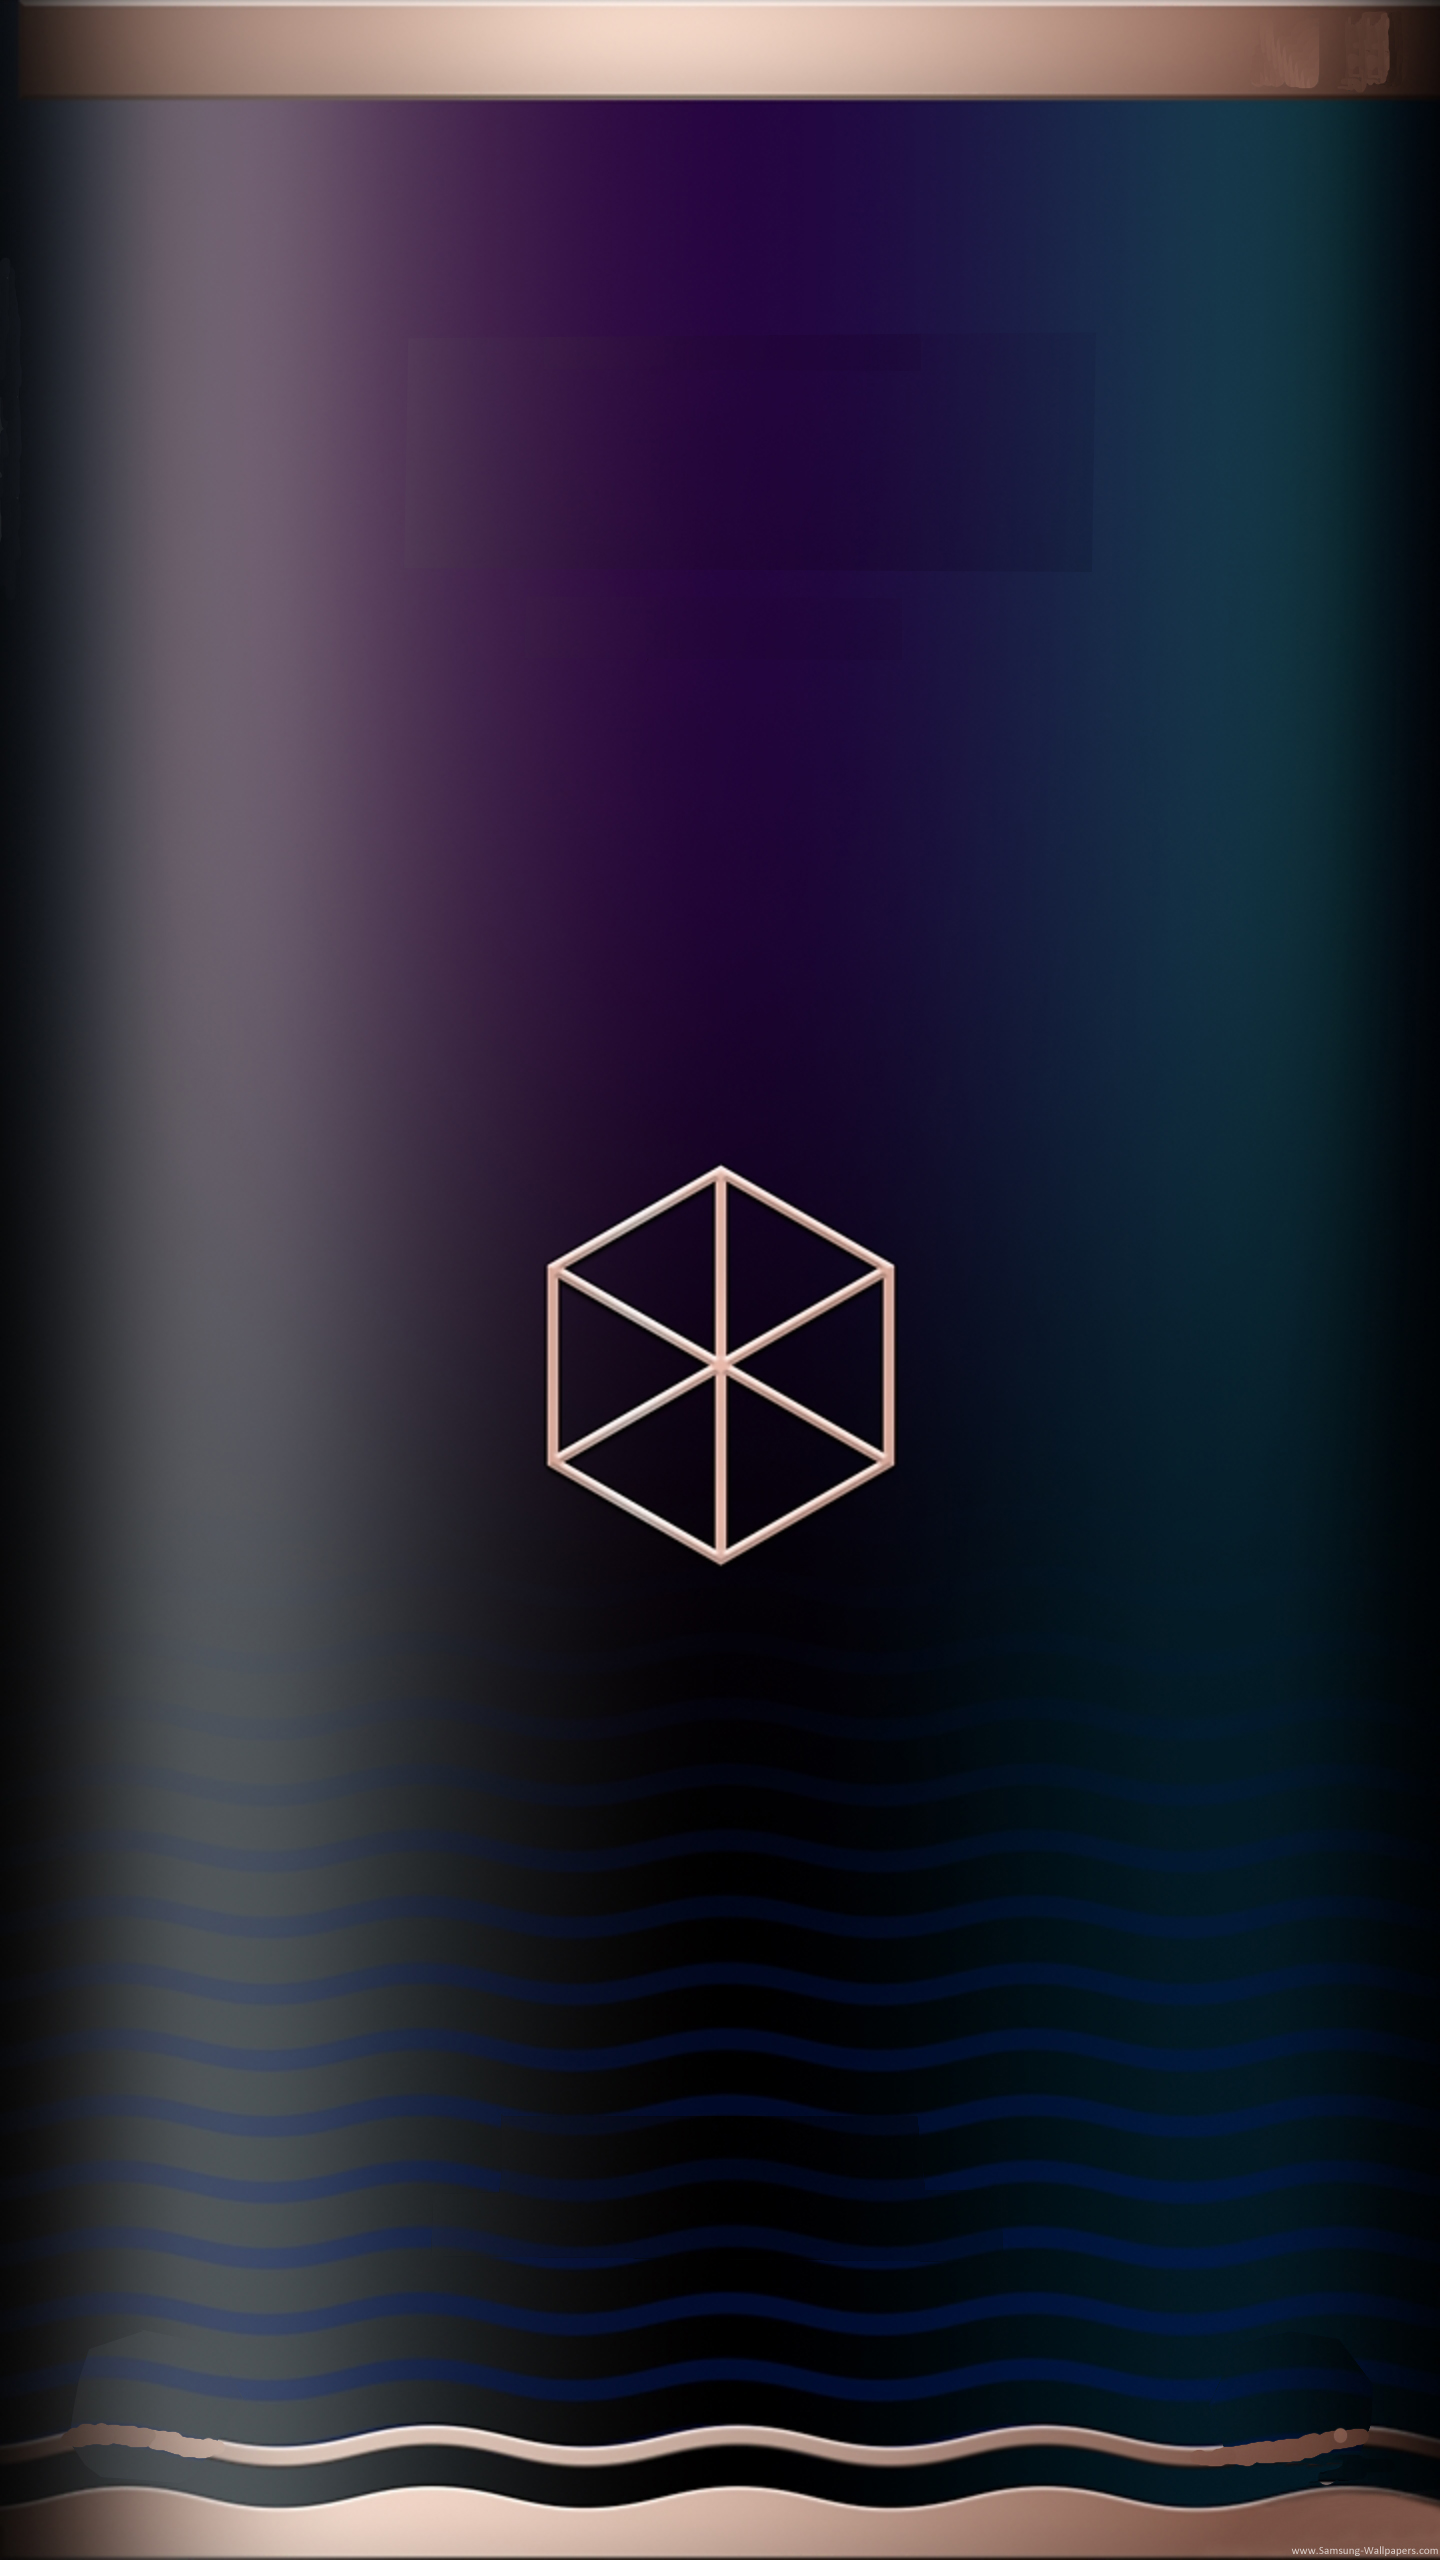 Wallpapers For Galaxy S7 Edge Posted By Ryan Cunningham